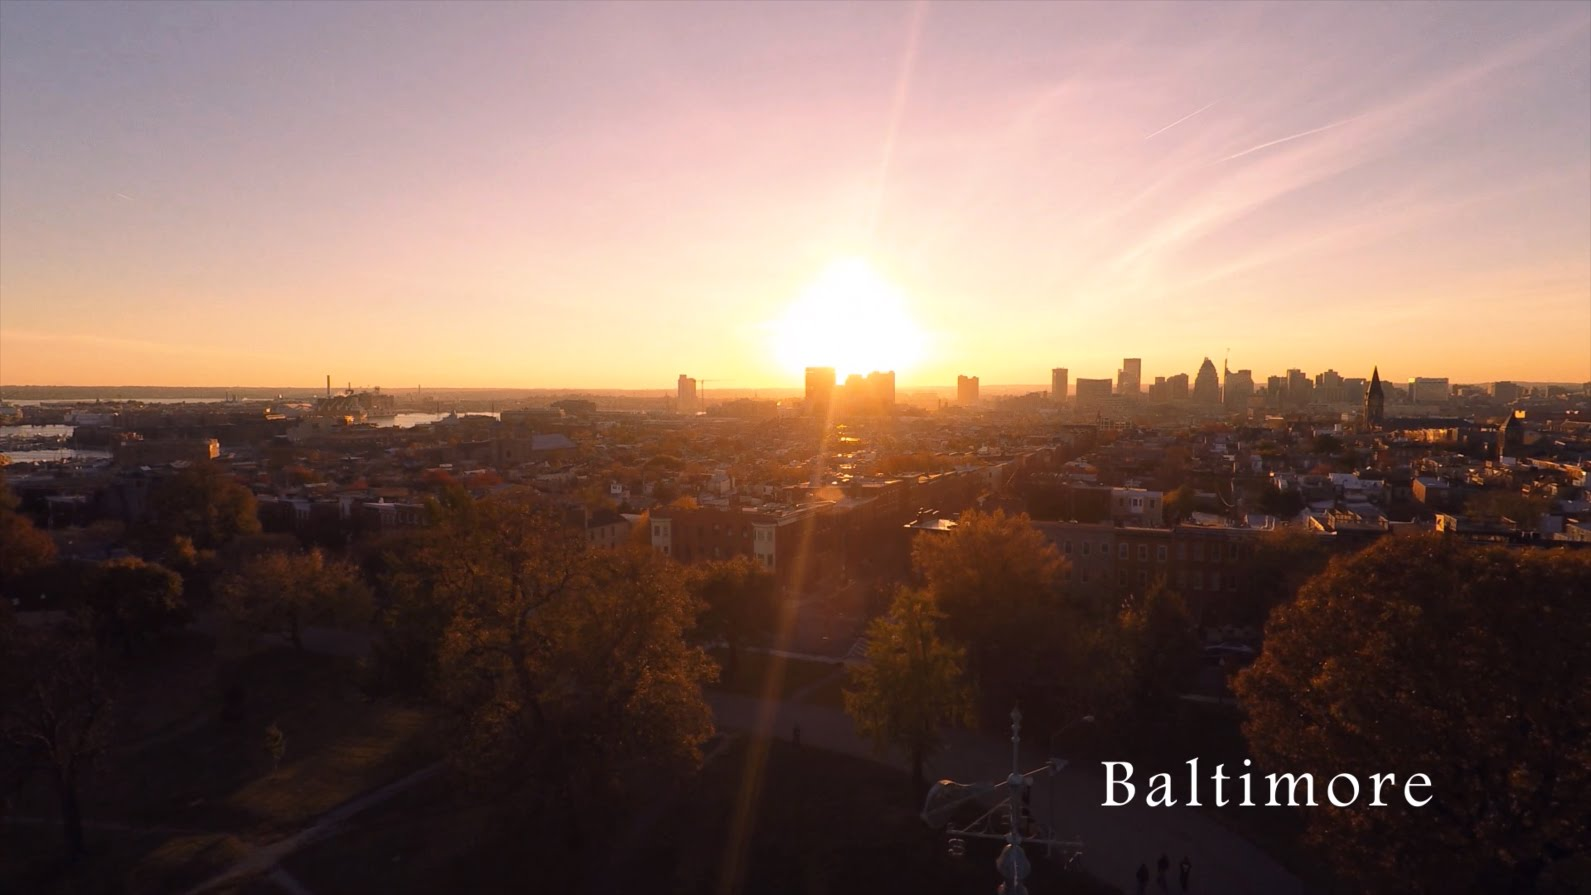 VIDEO: Pogledajmo grad Baltimore iz zraka (4K)